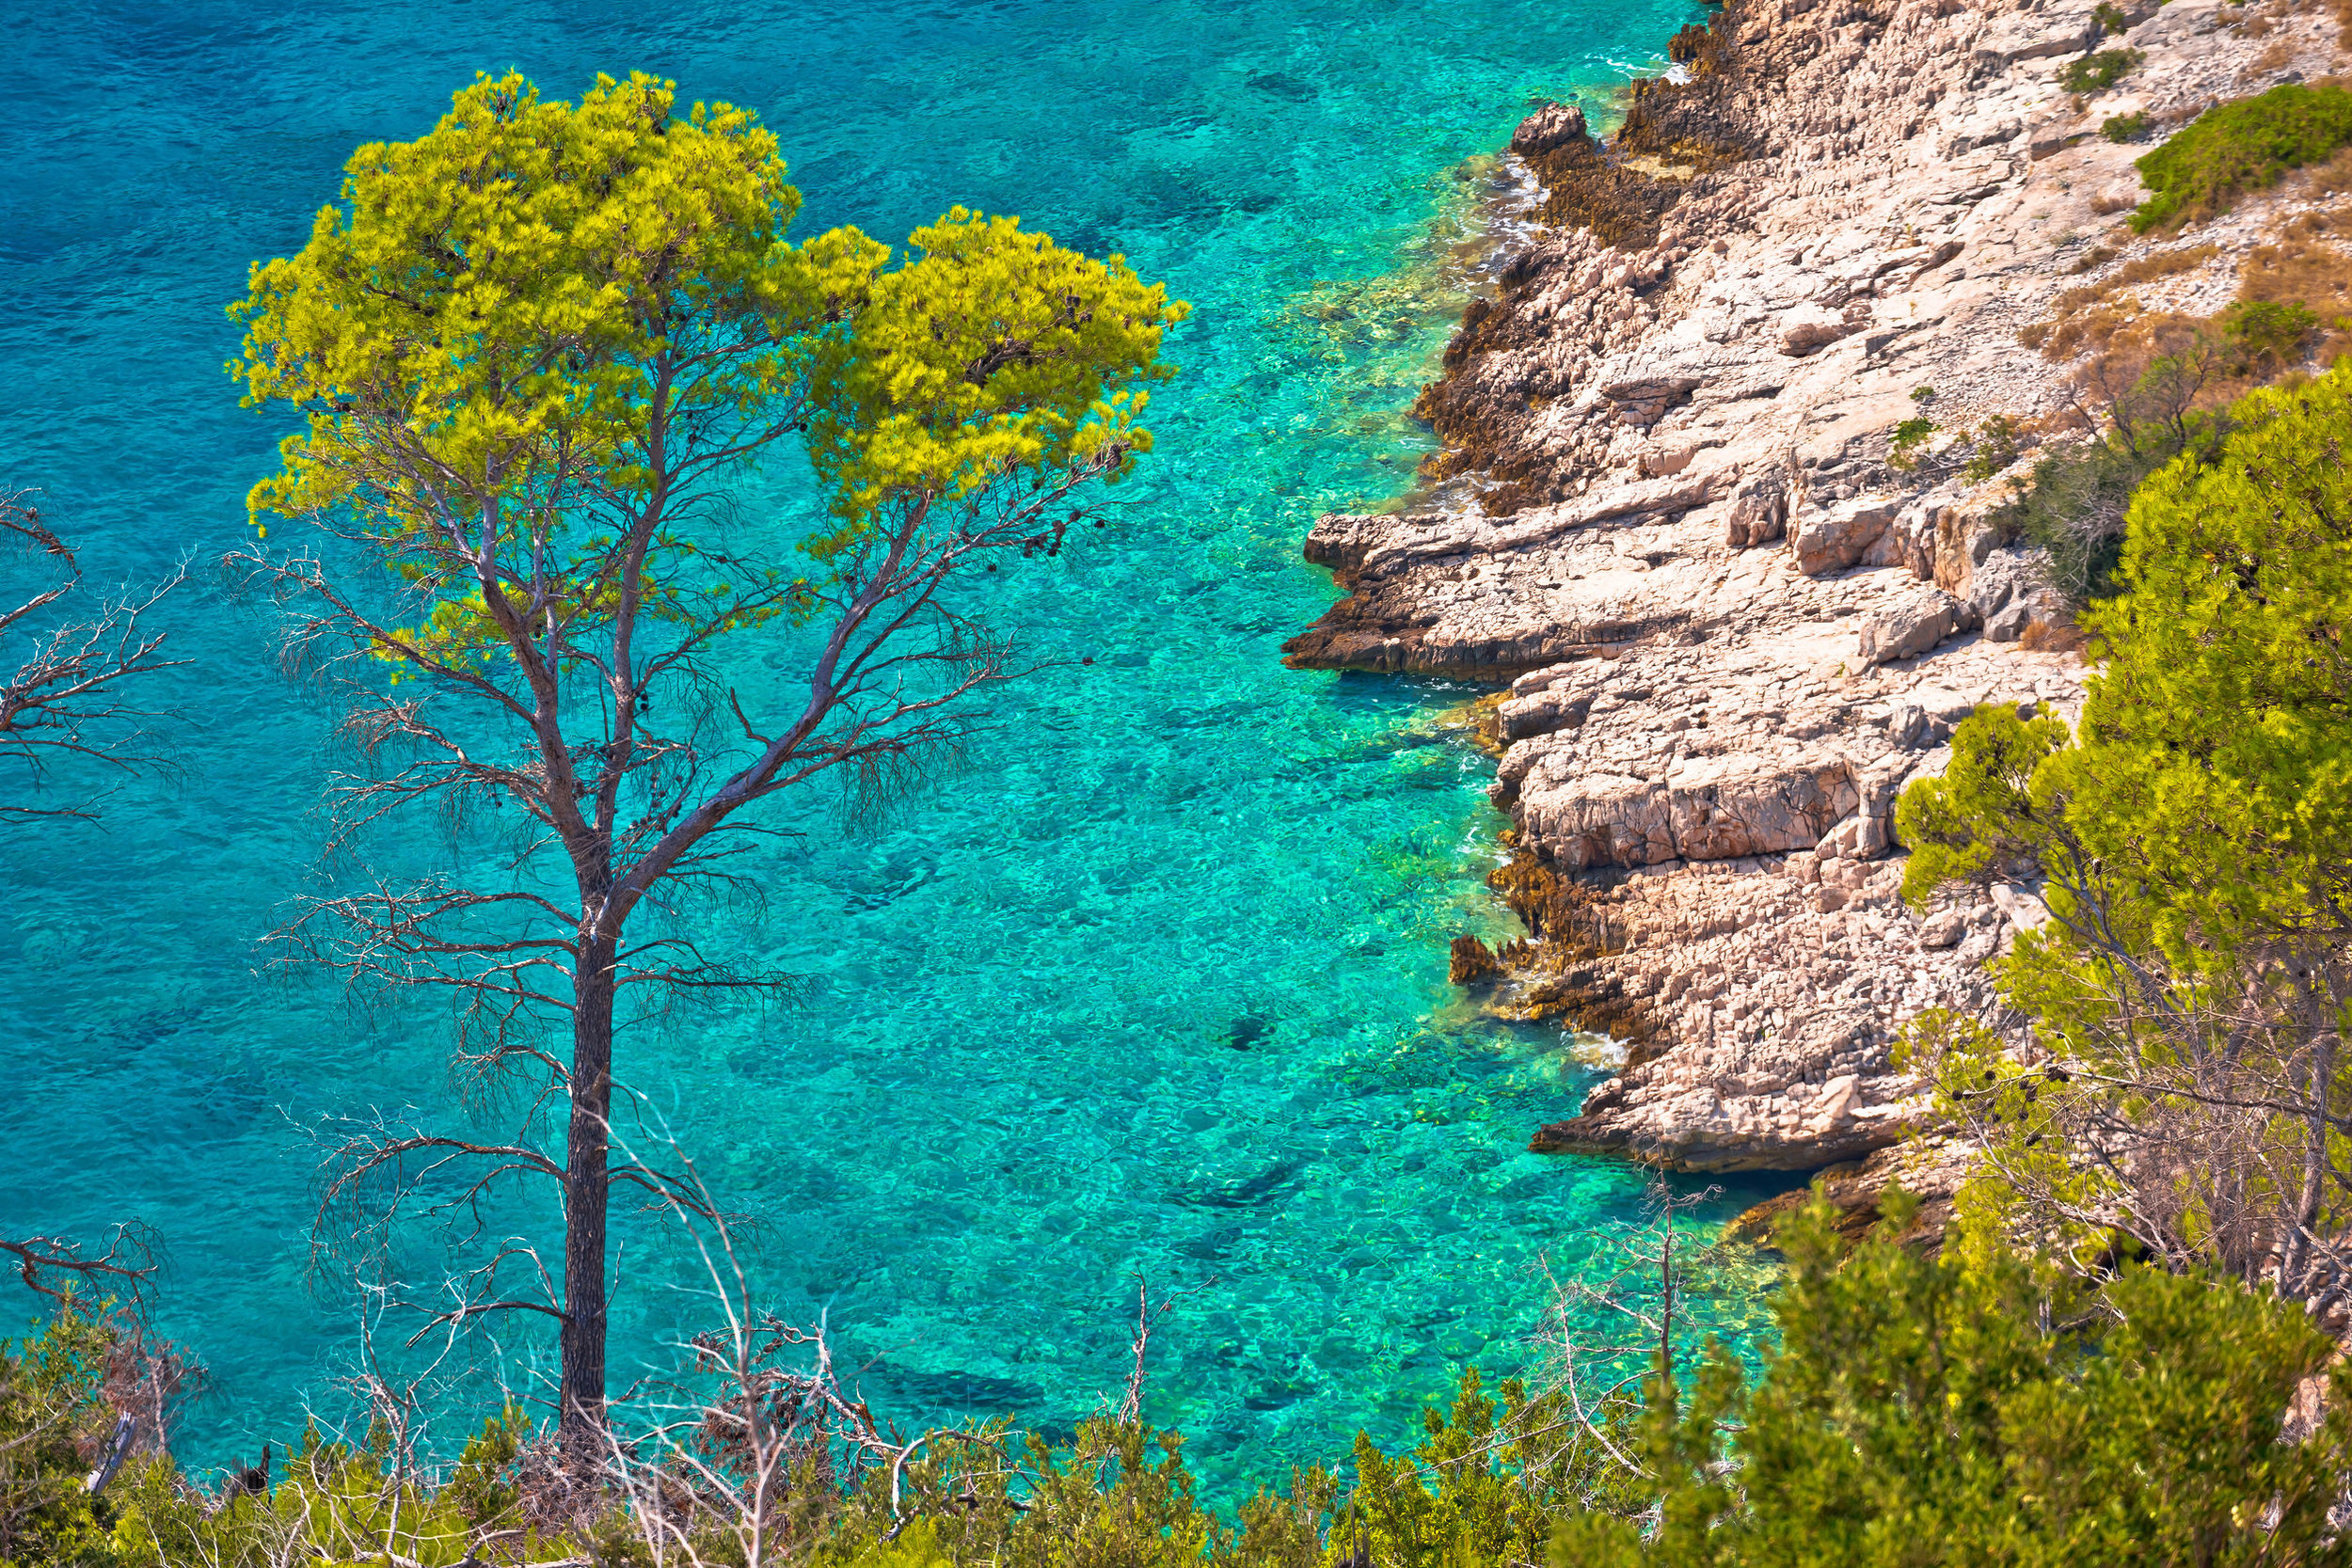 brac-island-bol-croatia-photo.jpg